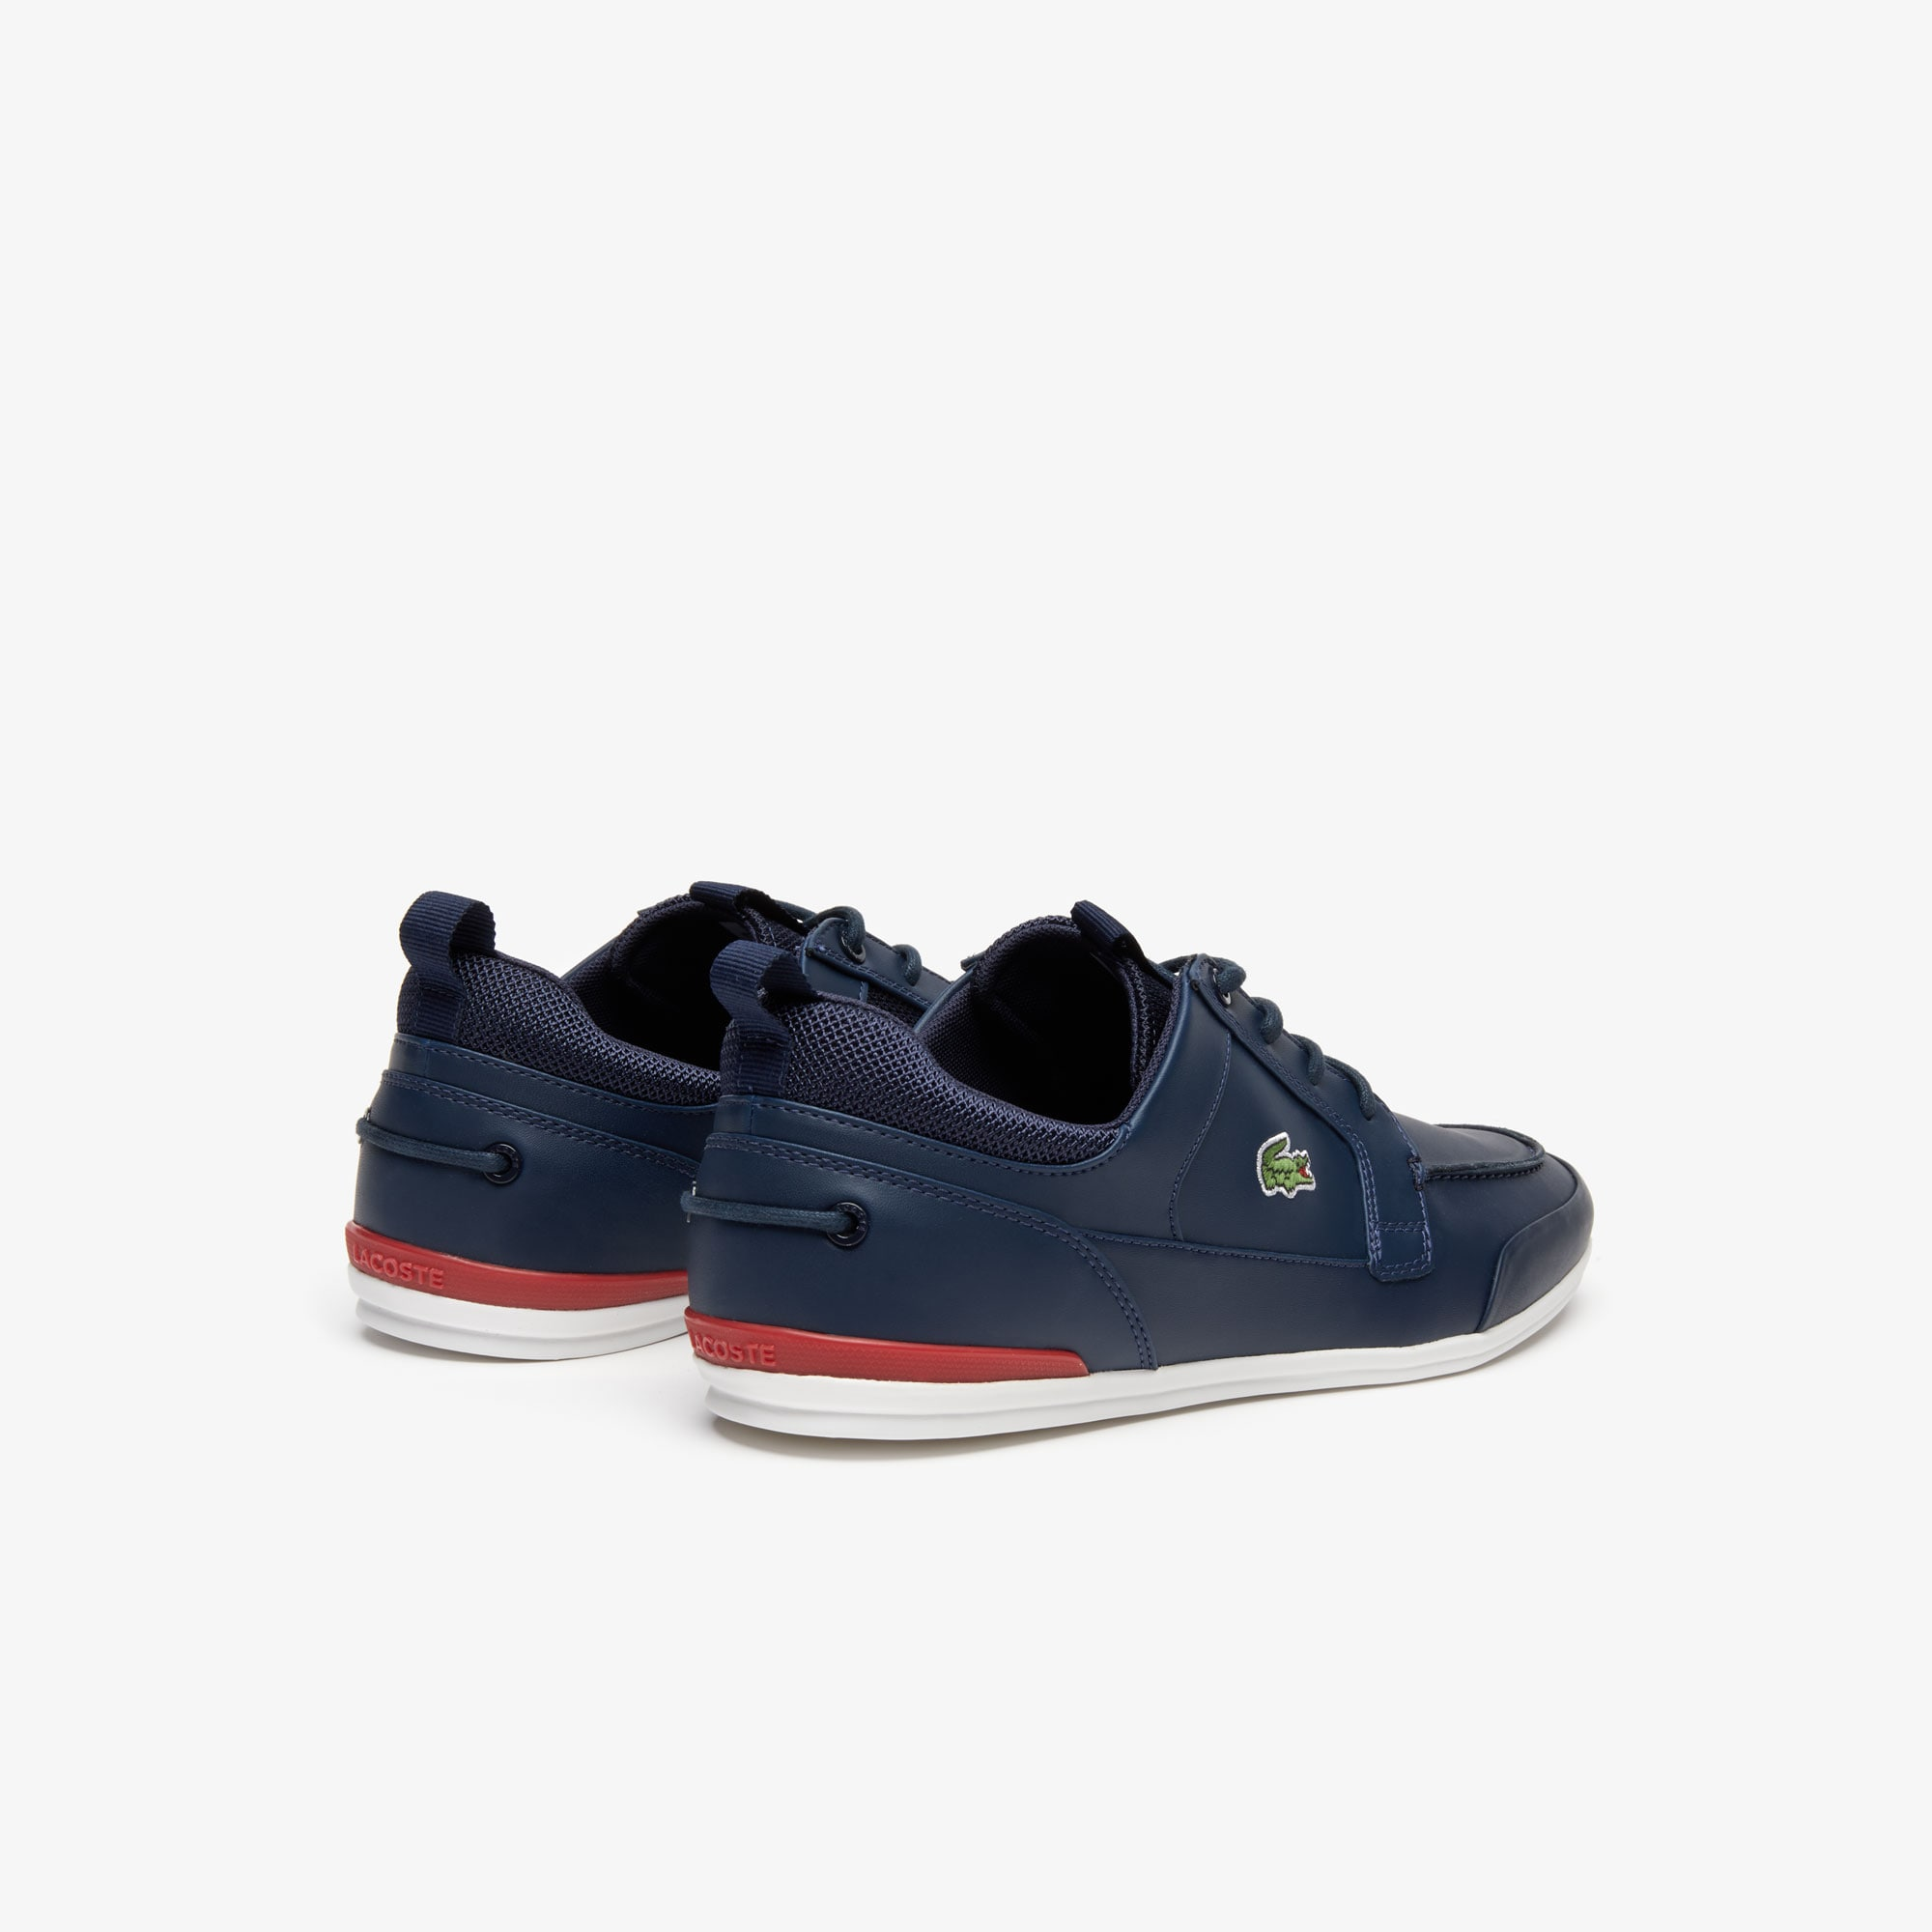 Men's Marina Leather and Textile Sneakers